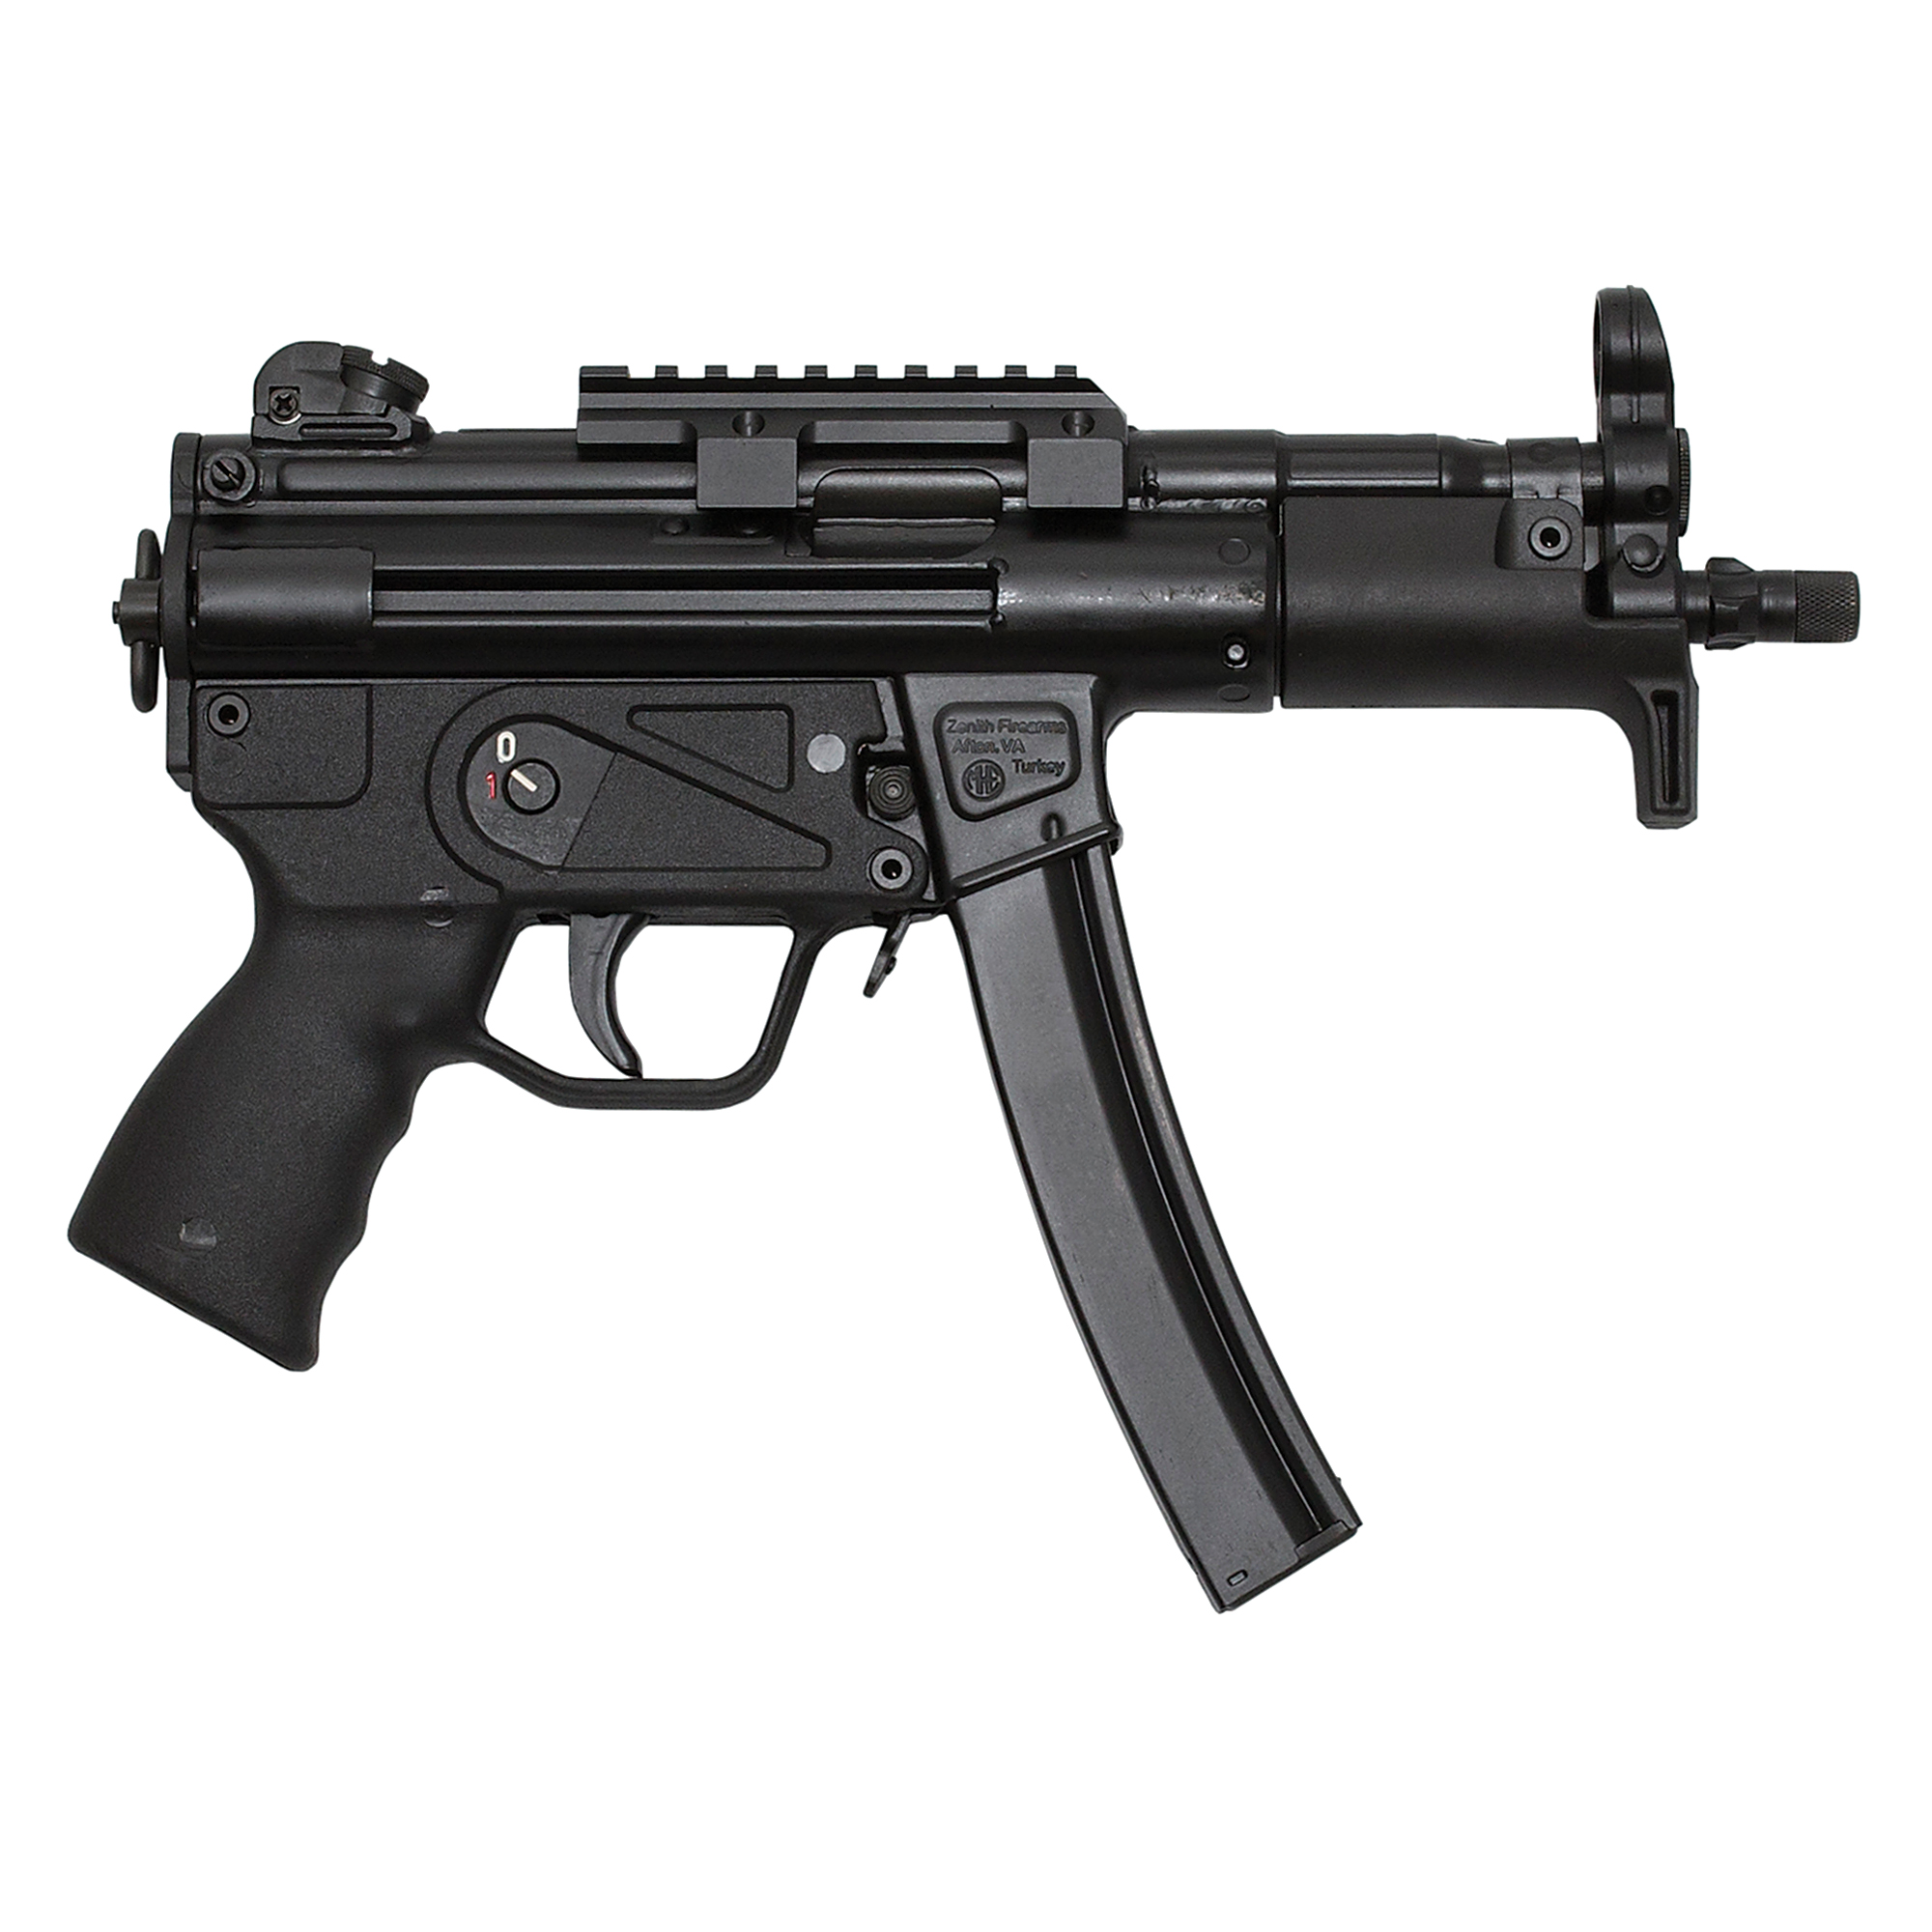 """Zenith's Z-5P is identical to its Z-5K save for a 1.2-inch barrel extension that accommodates 3-lug and threaded suppressor attachment points. When configured as a submachine gun it is typically outfitted with a sturdy folding stock"""" assuring comparable performance to its full-size counterpart while retaining a minimum length that makes it easy to conceal"""" stow"""" and deploy from confined spaces. It is covered by a five-year warranty"""" and ships in an MKE hard case with a handstop forearm"""" a Picatinny optic rail"""" three magazines"""" a military-style sling"""" two extra takedown pins"""" a cleaning kit"""" and a user manual."""